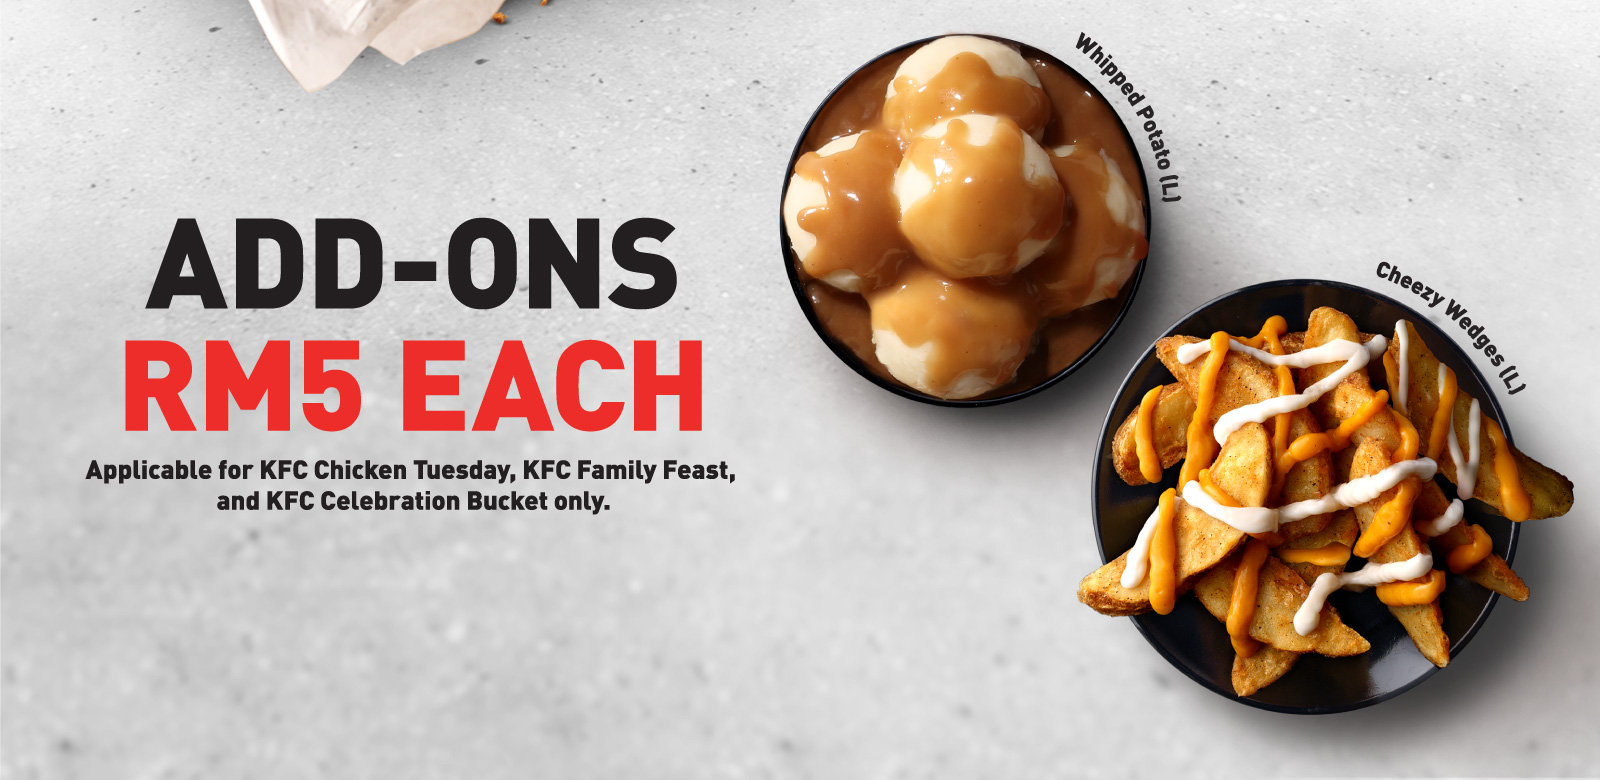 Add-Ons, Chicken Tuesday, Whipped Potato, Cheezy Wedges